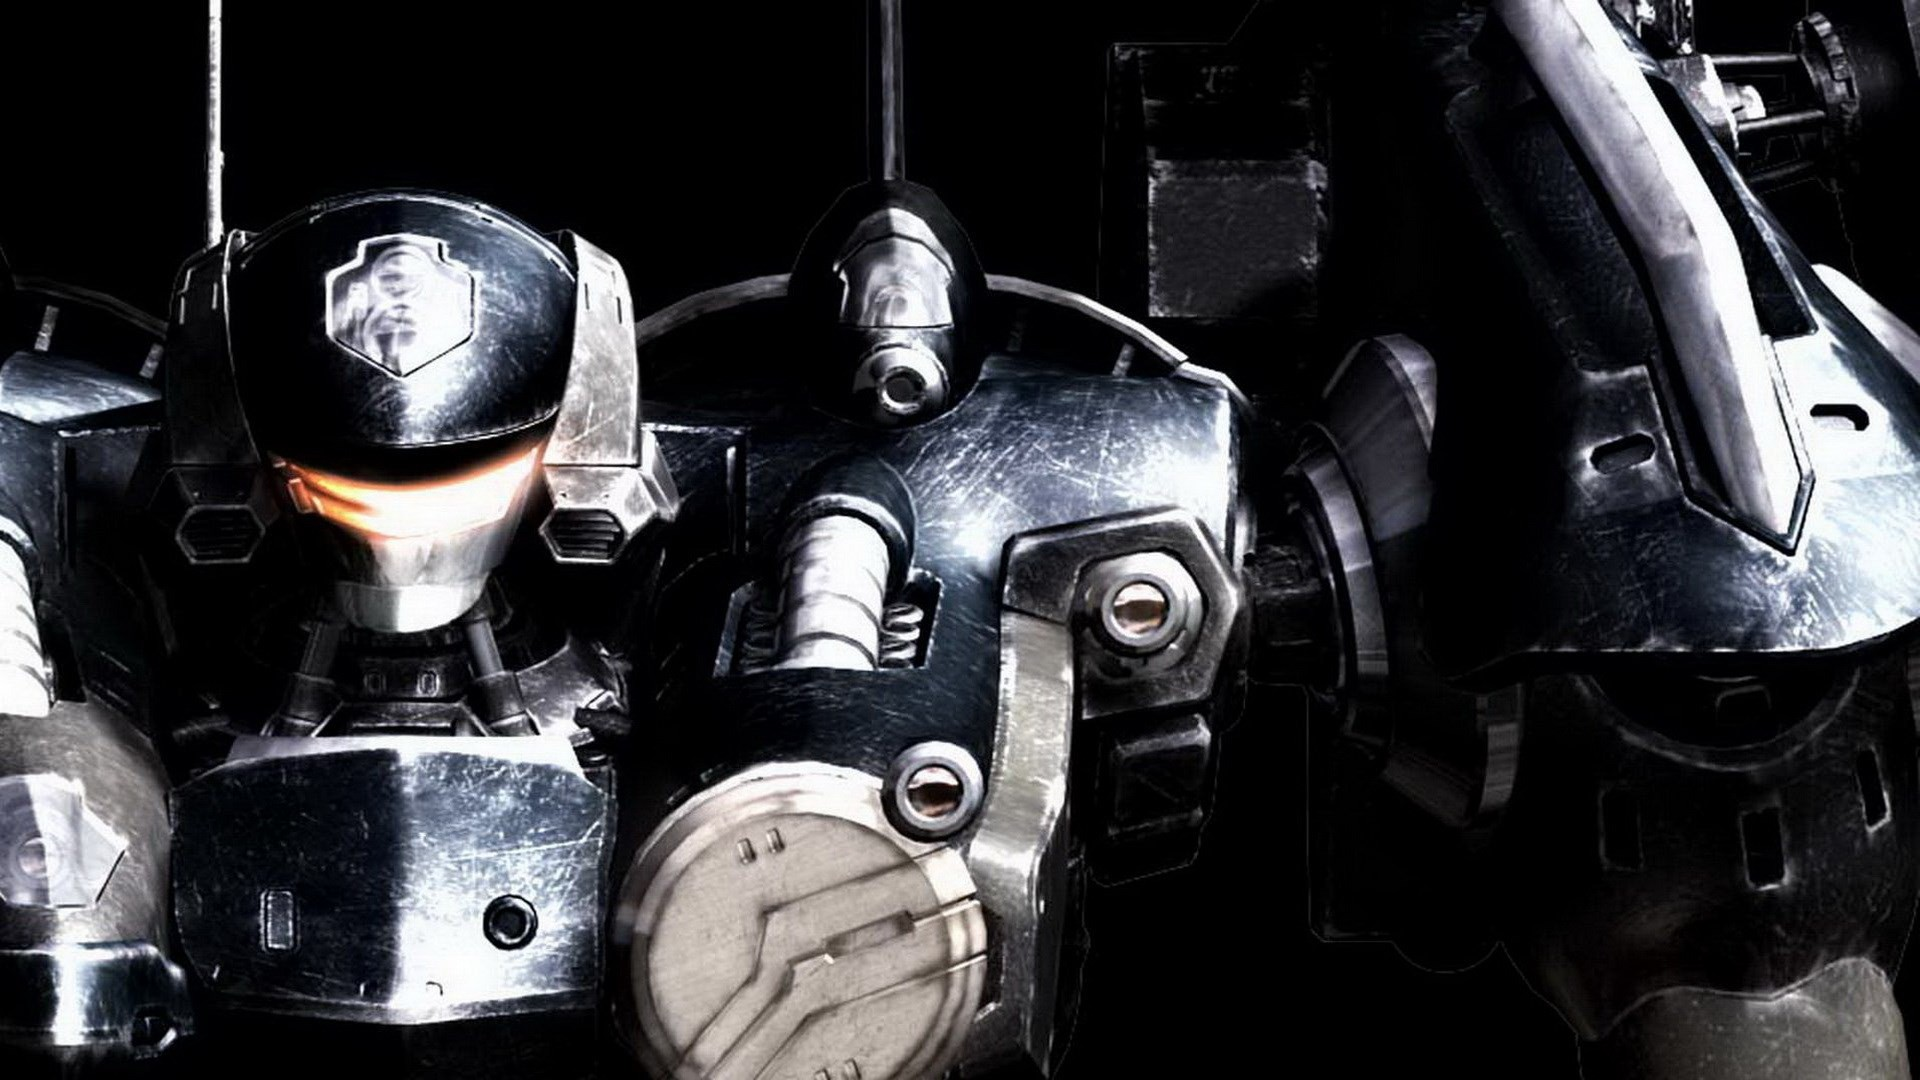 2017-03-27 – armored core image – Full HD Wallpapers, Photos, #1956150    ololoshenka   Pinterest   Armored core and High resolution wallpapers